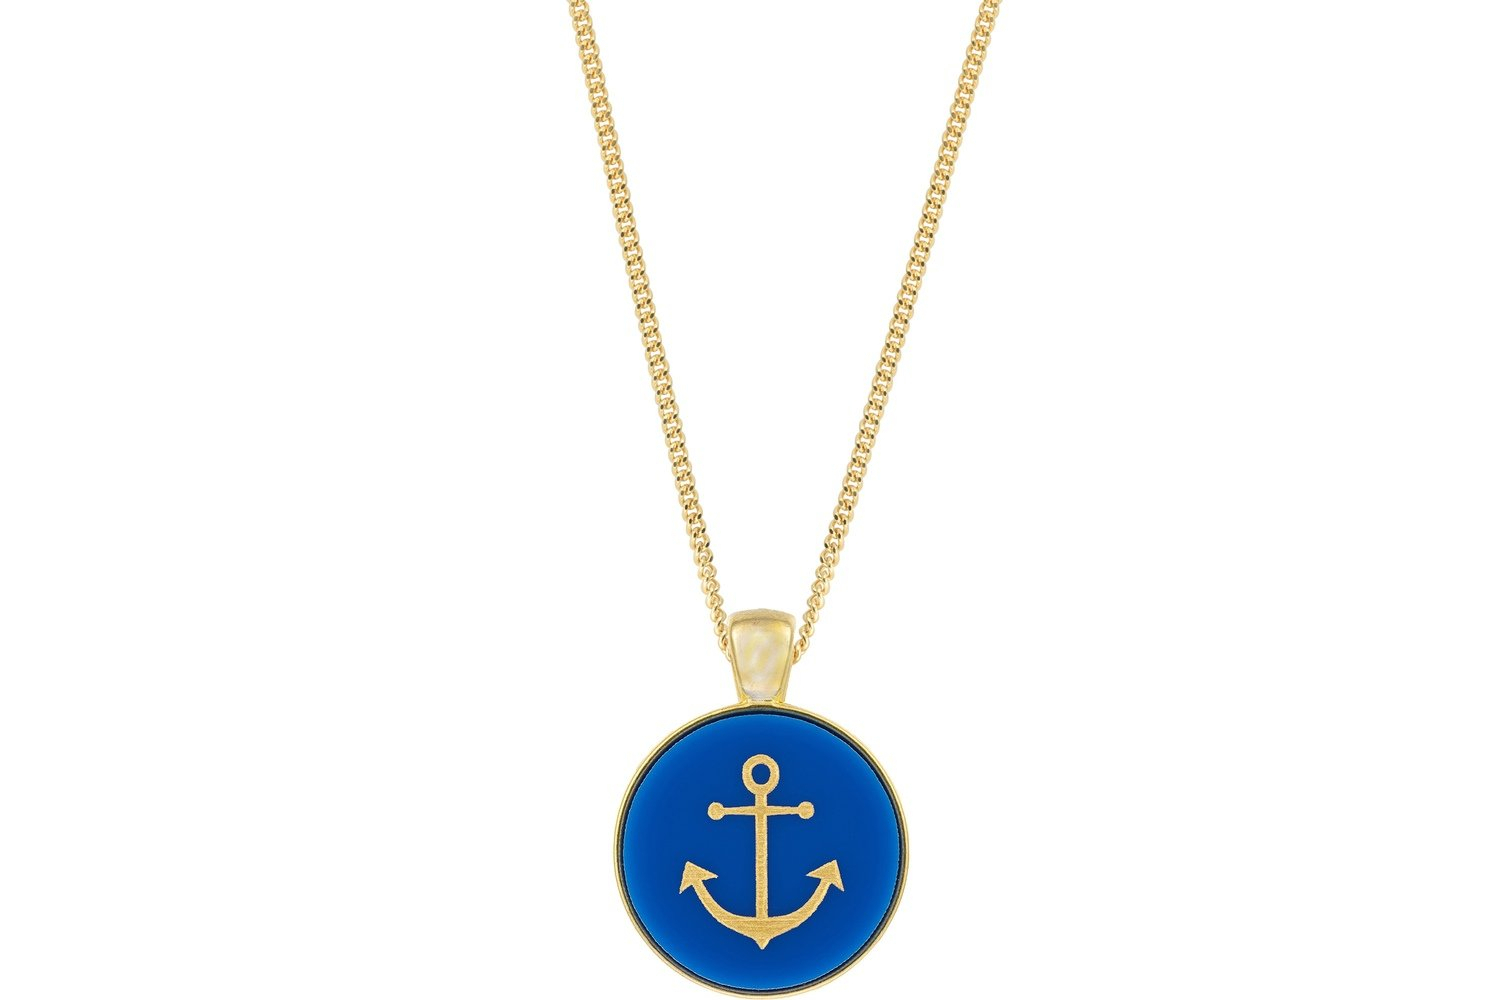 Anchor Pendant Classic Style With Bezel On Chain Necklace Inside Latest Classic Anchor Chain Necklaces (View 6 of 25)